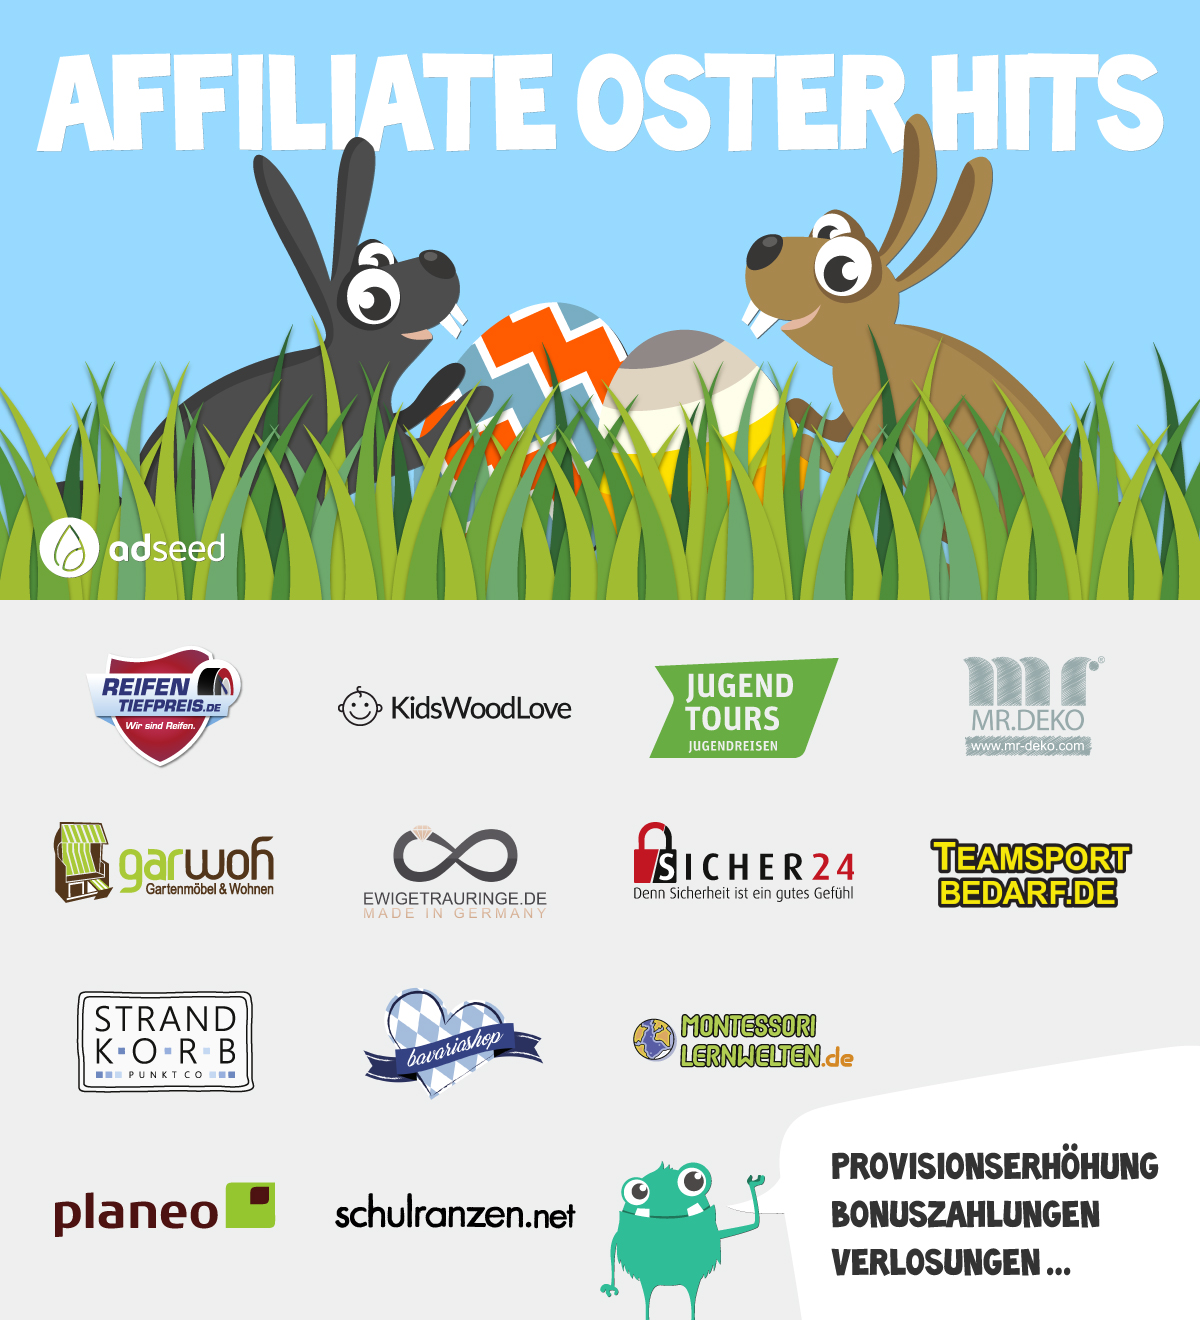 Affiliate Oster Hits